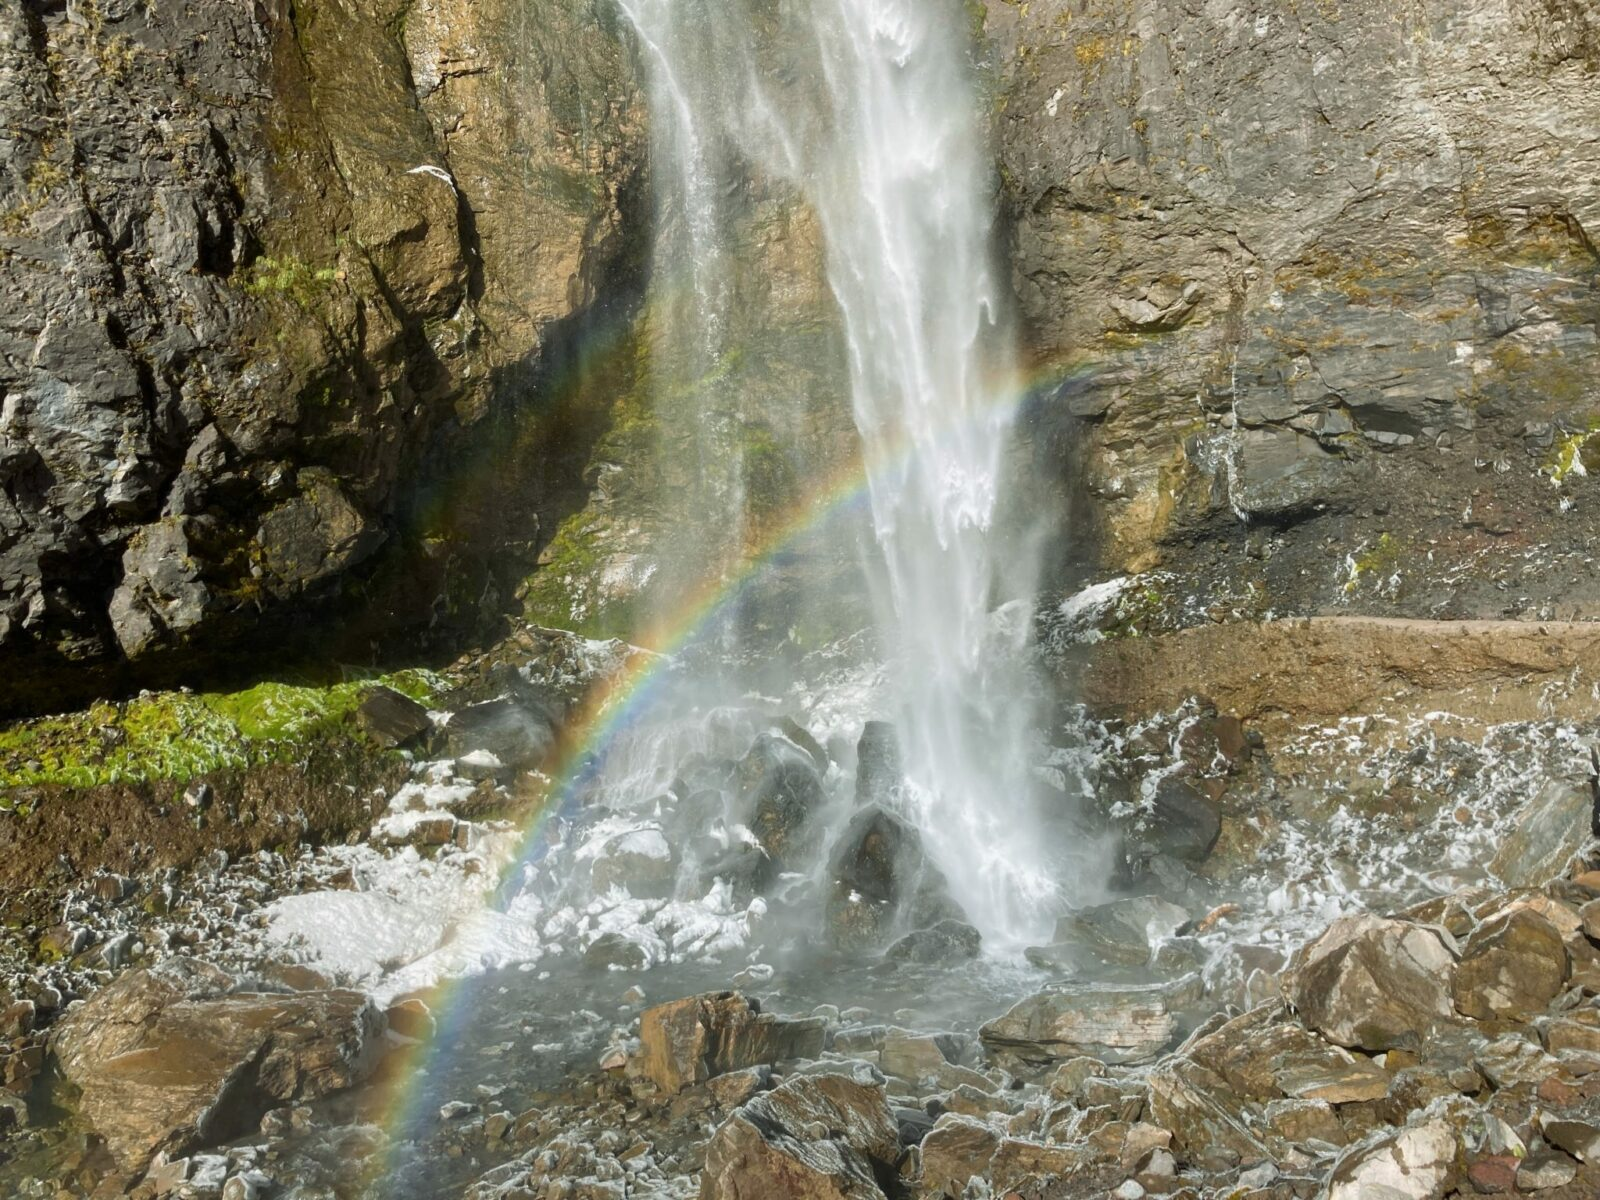 The base of Comet Falls crashes onto frosty rocks. There is also foam from the waterfall and a rainbow arcs across the base of the waterfall